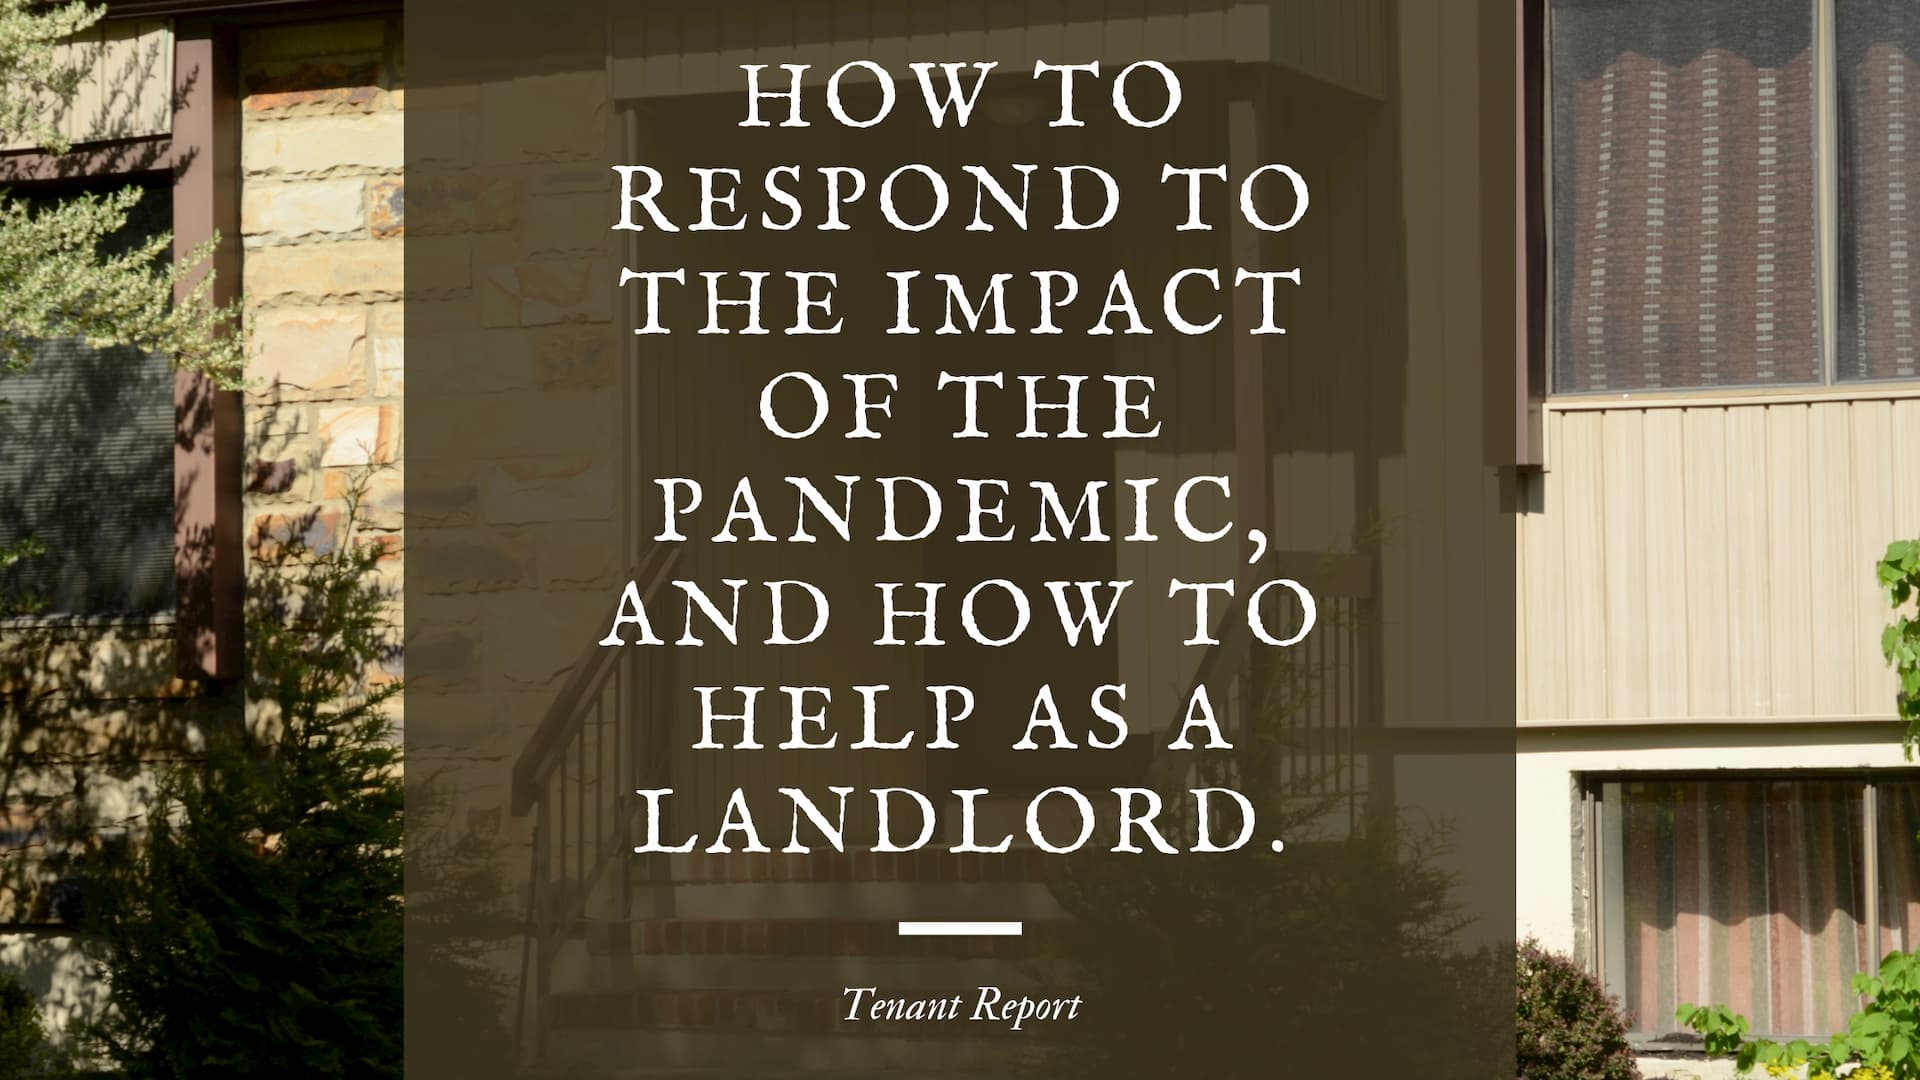 How to Respond to the Impact of the Pandemic (& How to Help as a Landlord)